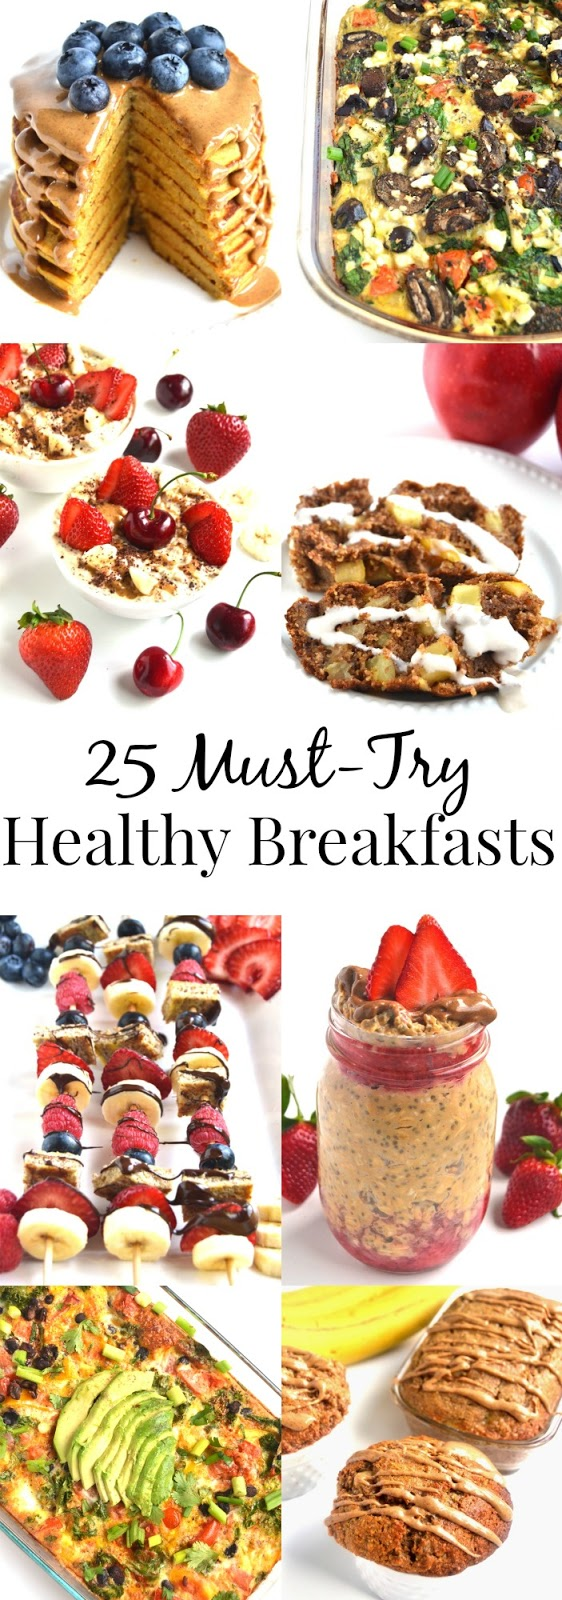 25 Must-Try Healthy Breakfasts